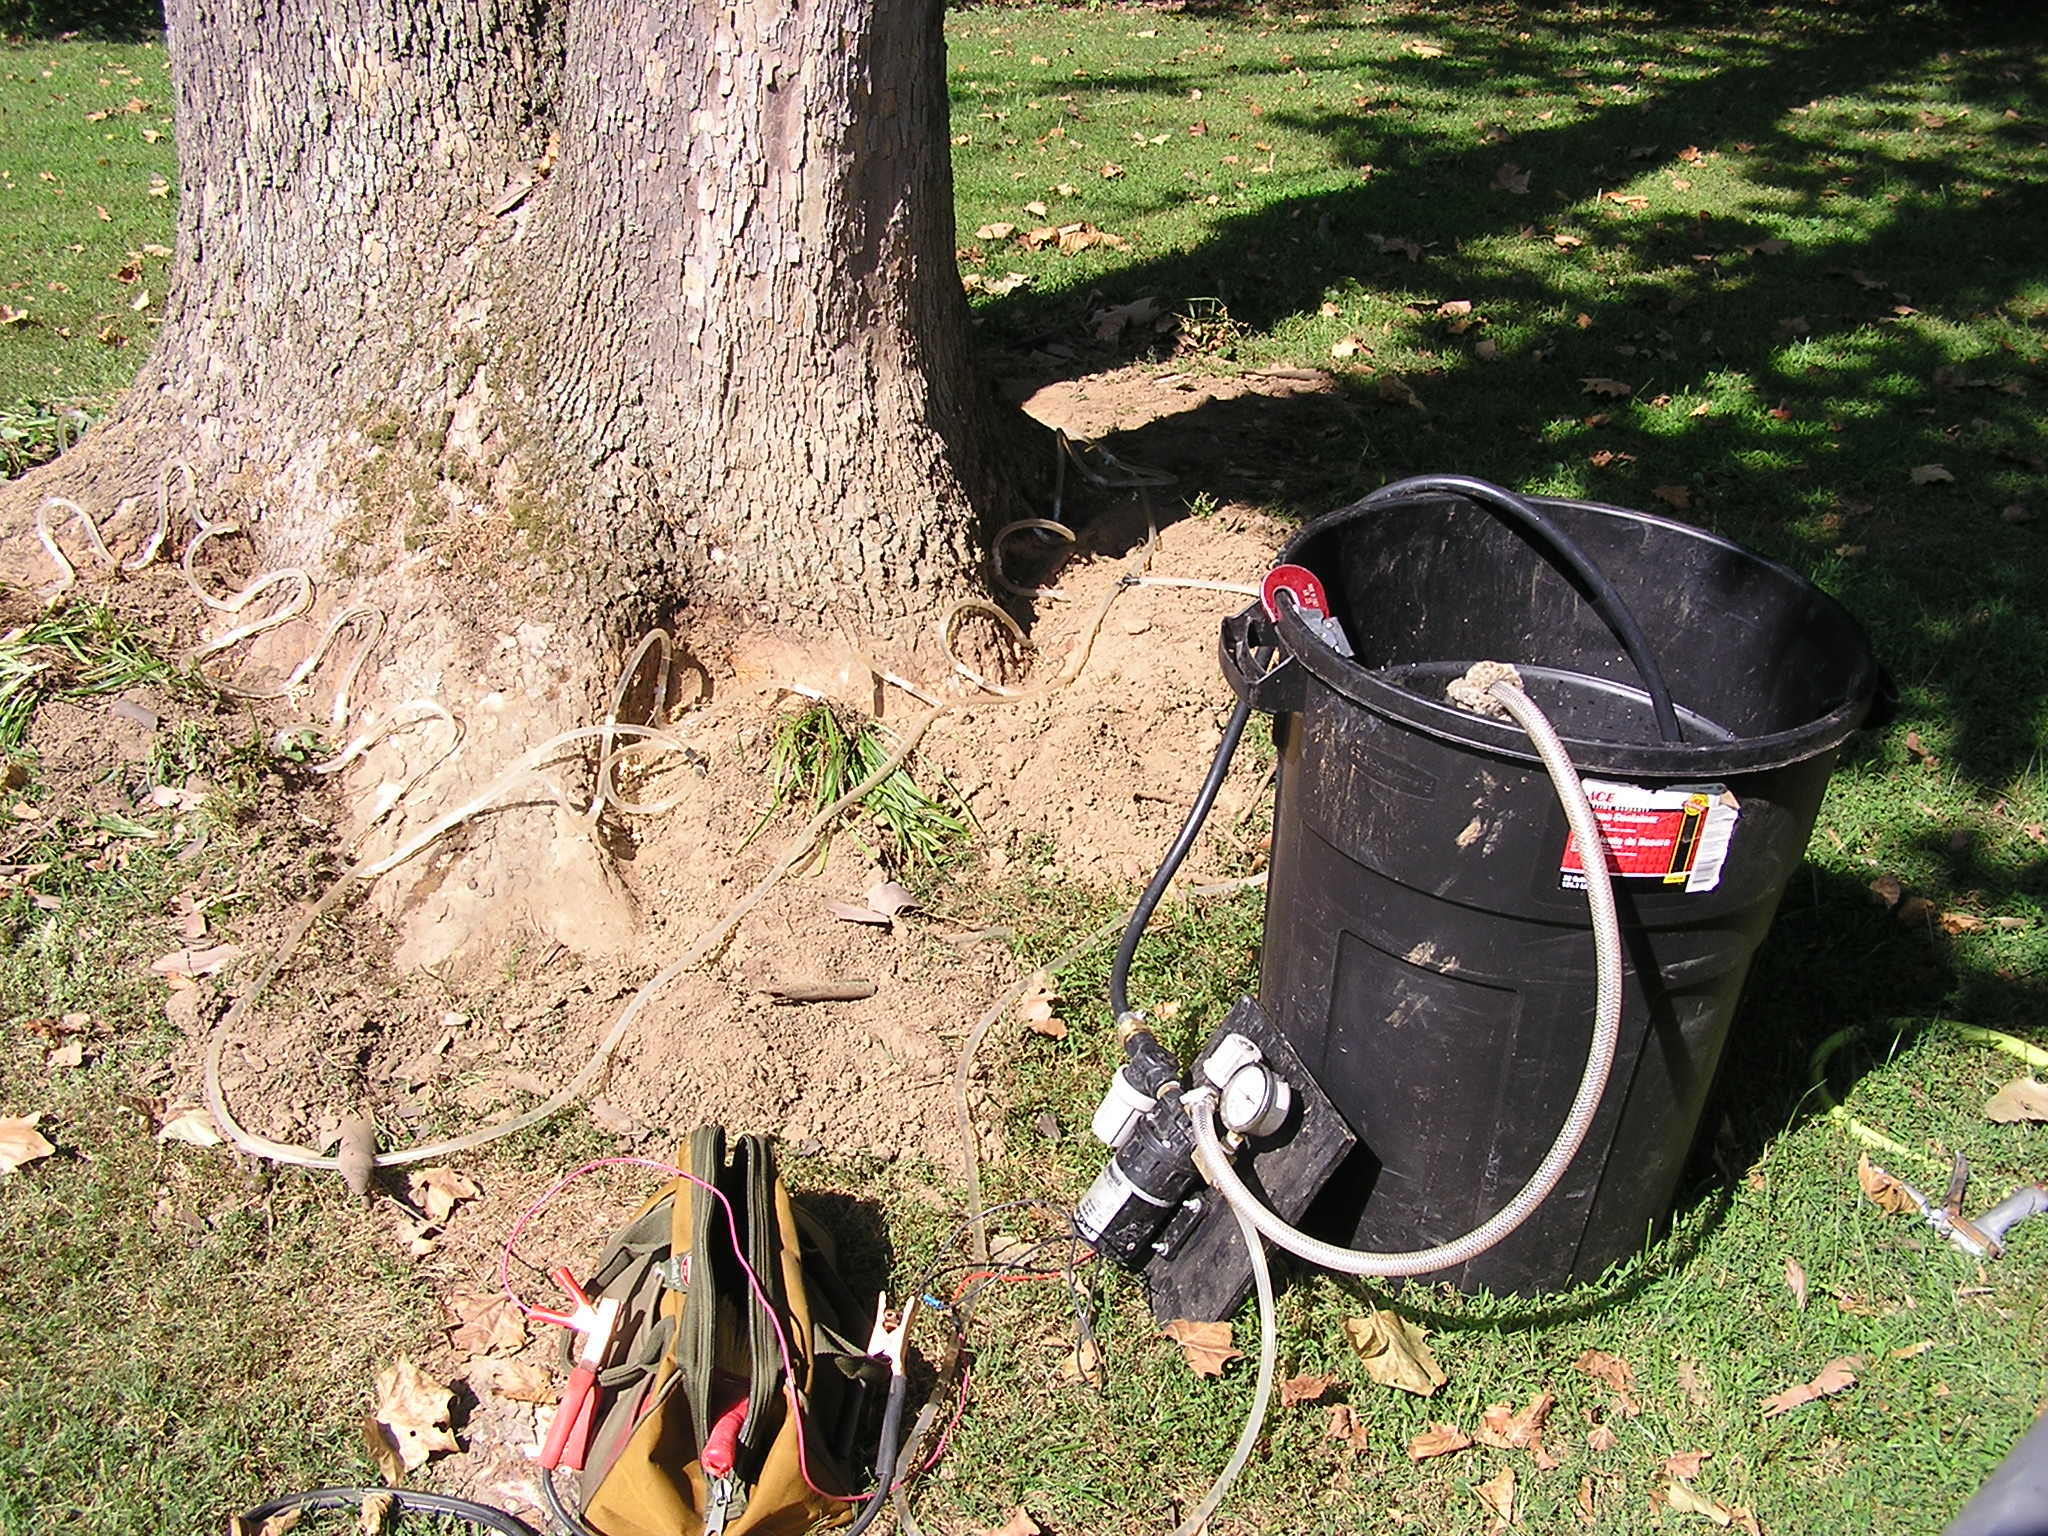 Micro-injection tools near a tree